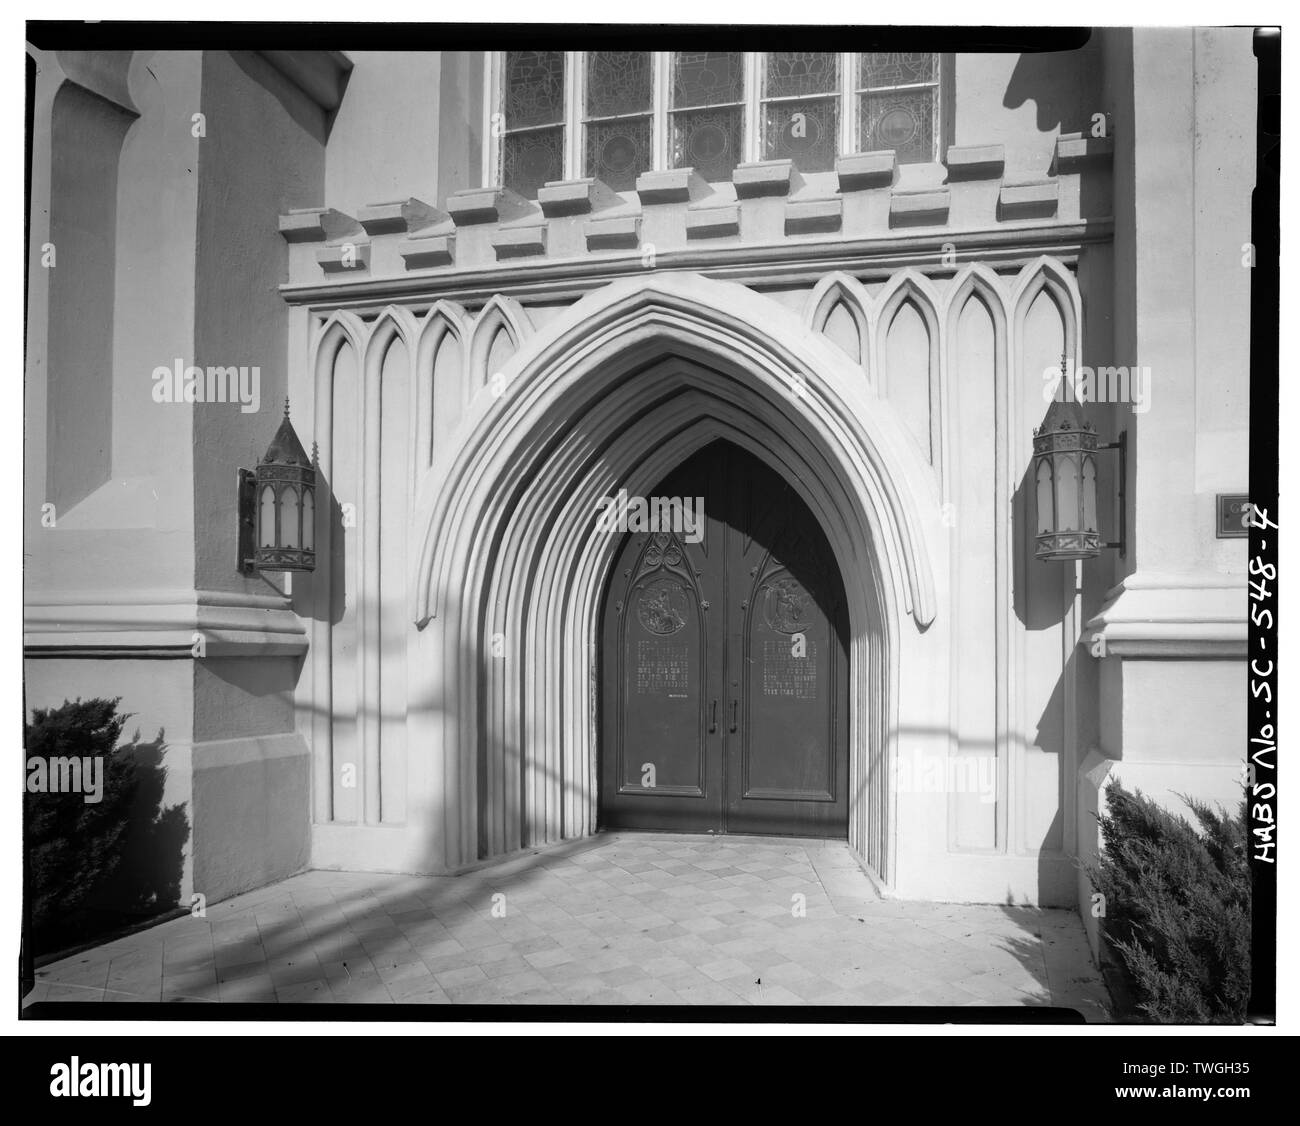 RECESSED MAIN ENTRY, SOUTH (FRONT) ELEVATION - Grace Episcopal Church, 100 Wentworth Street, Charleston, Charleston County, SC - Stock Image